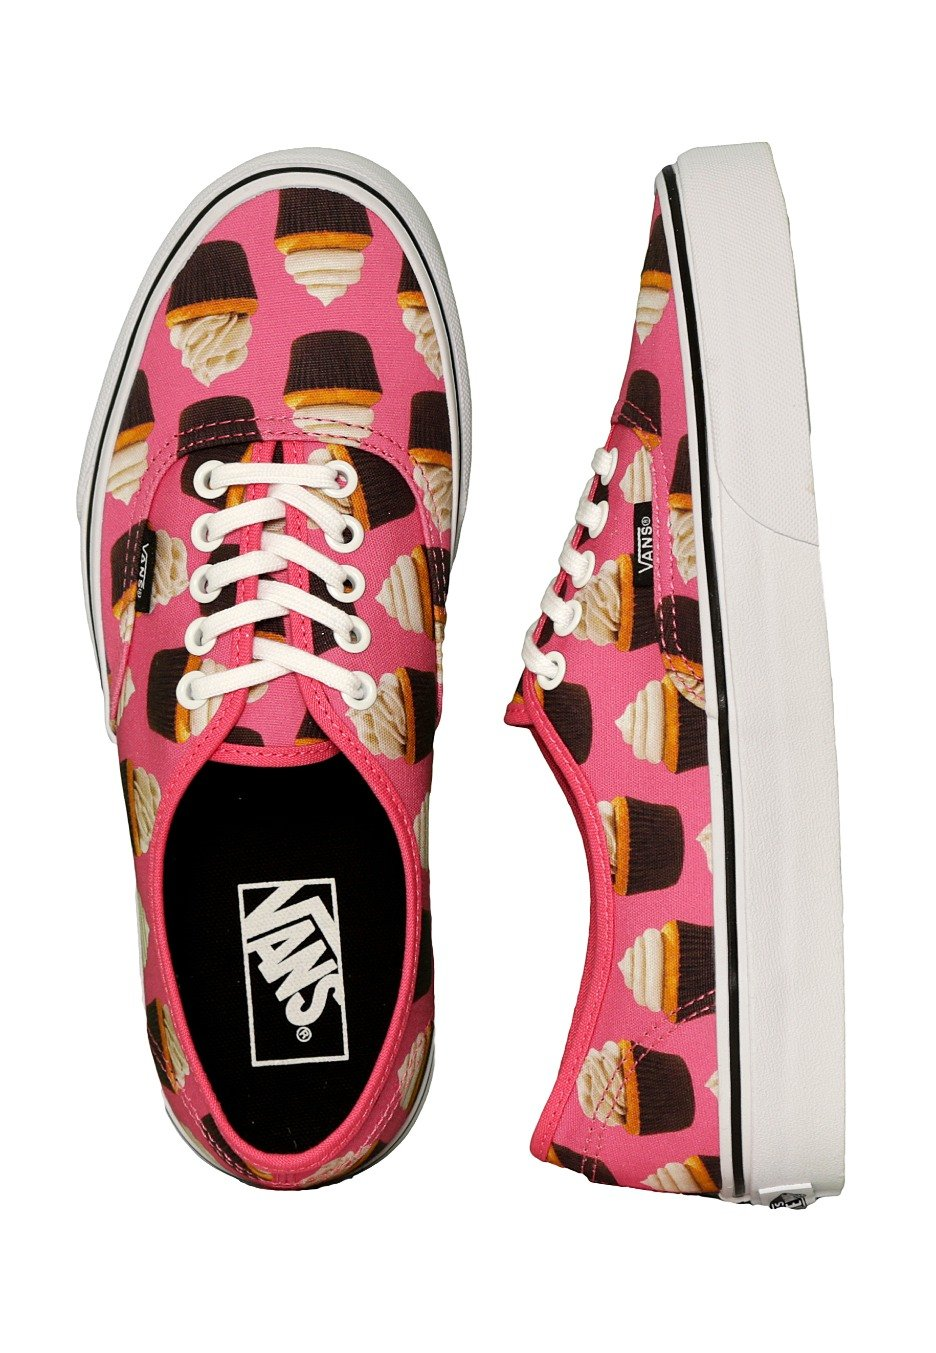 2eb25c51fd Vans - Authentic Late Night Hot Pink Cupcakes - Girl Shoes - Impericon.com  UK